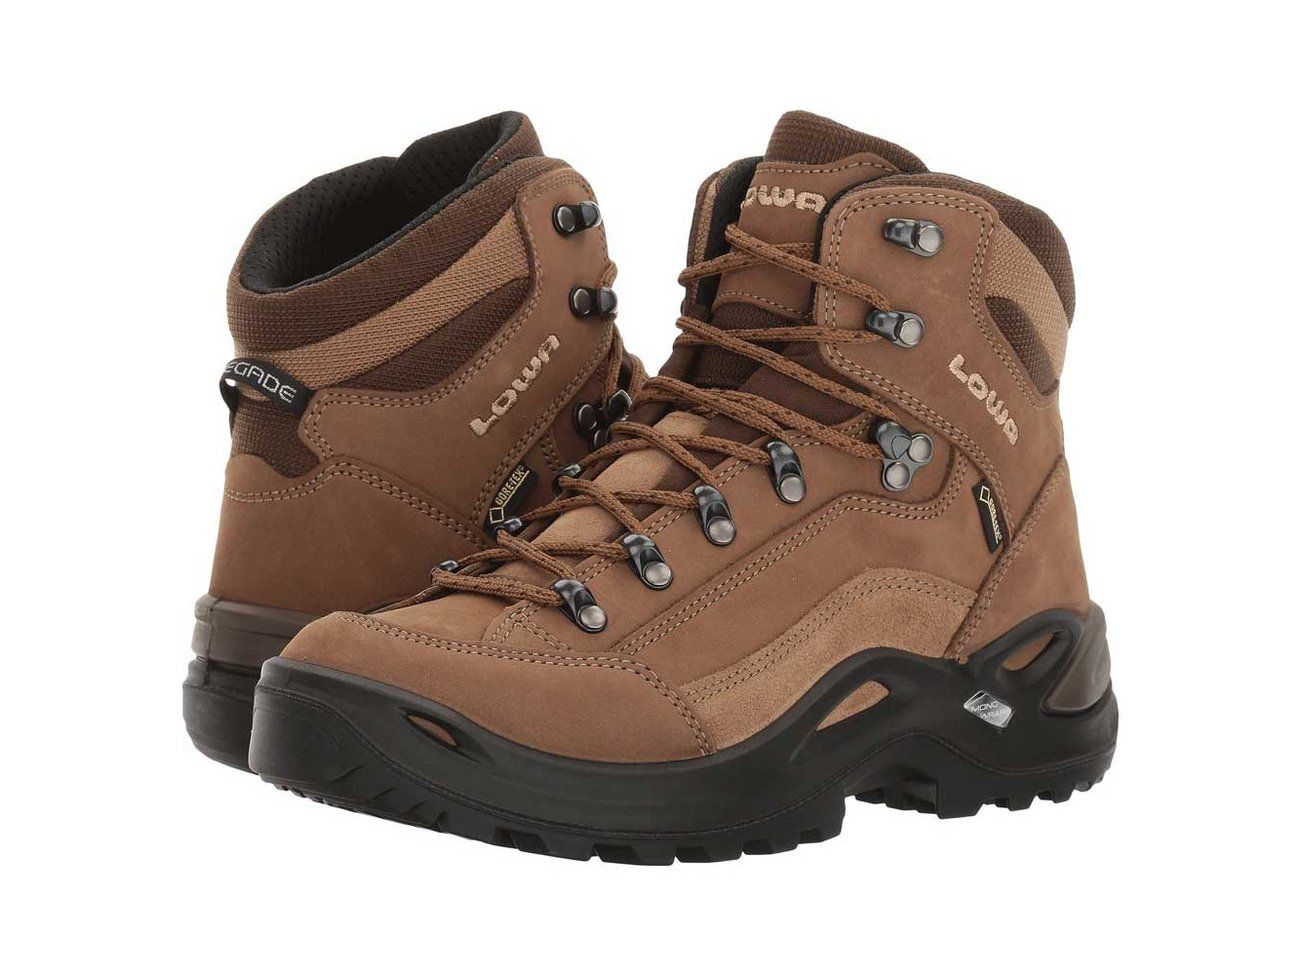 1b57c4f4766 The 20 Best Hiking Shoes and Boots for Women | Climb Every Mountain ...